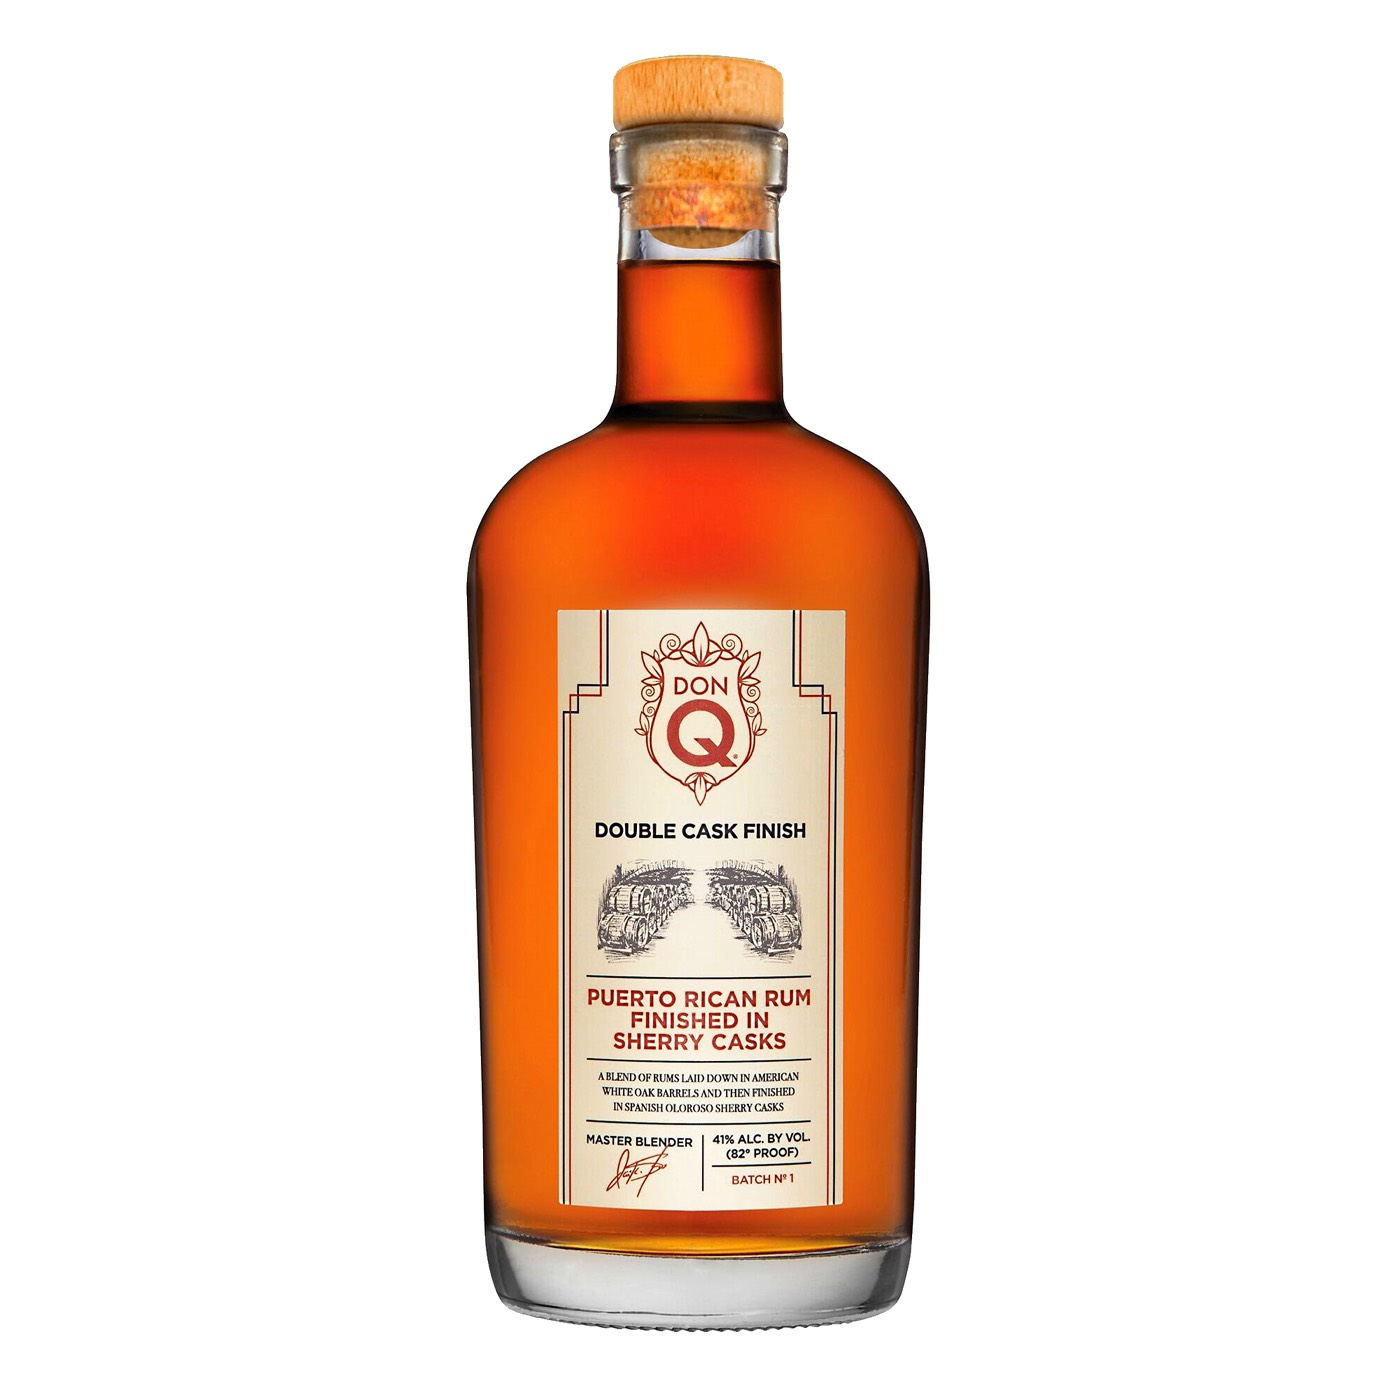 Bottle image of Don Q Double Cask Finish - Sherry Cask